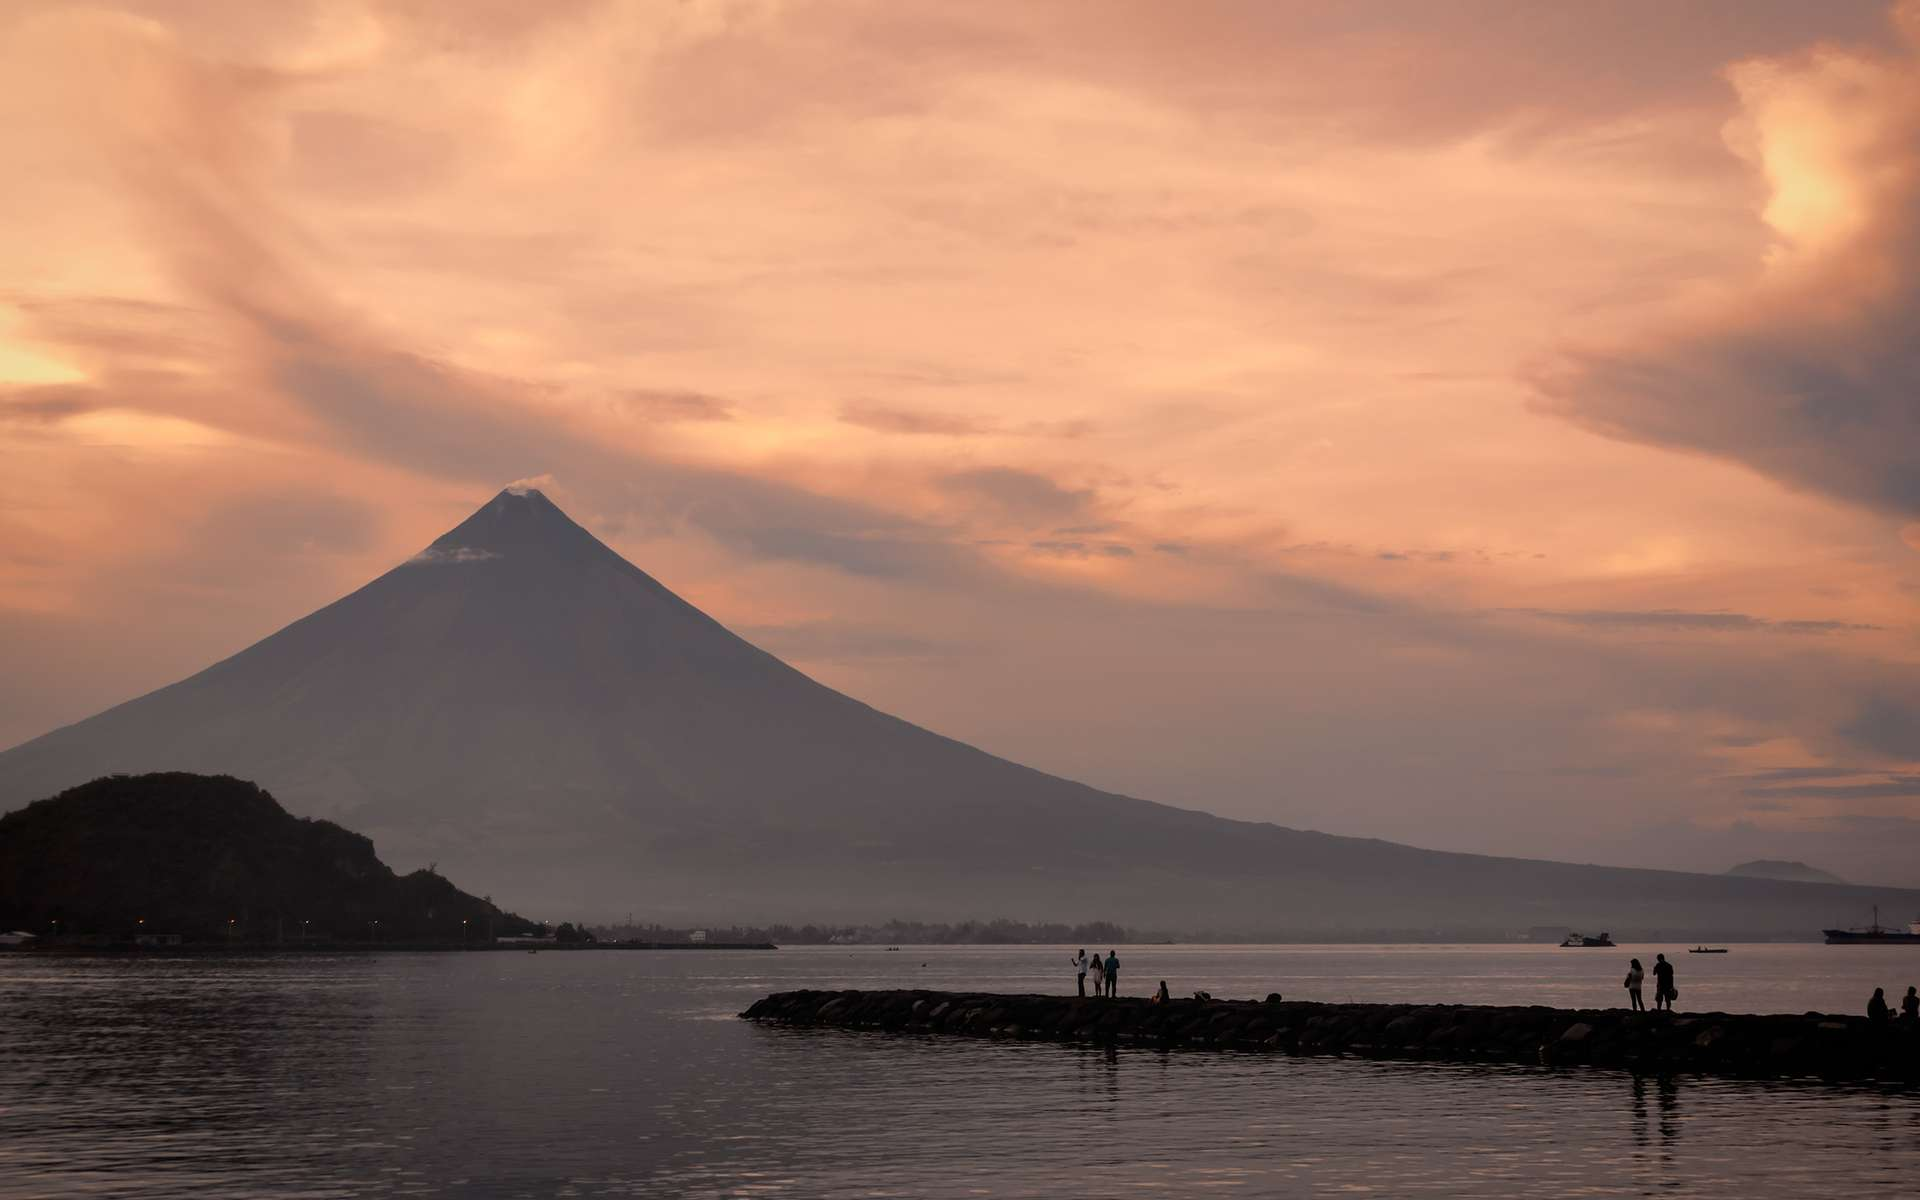 Le volcan Mayon est entré en éruption et menace les Philippines. Le voici en photo au soleil couchant. © ottosphotos, Fotolia